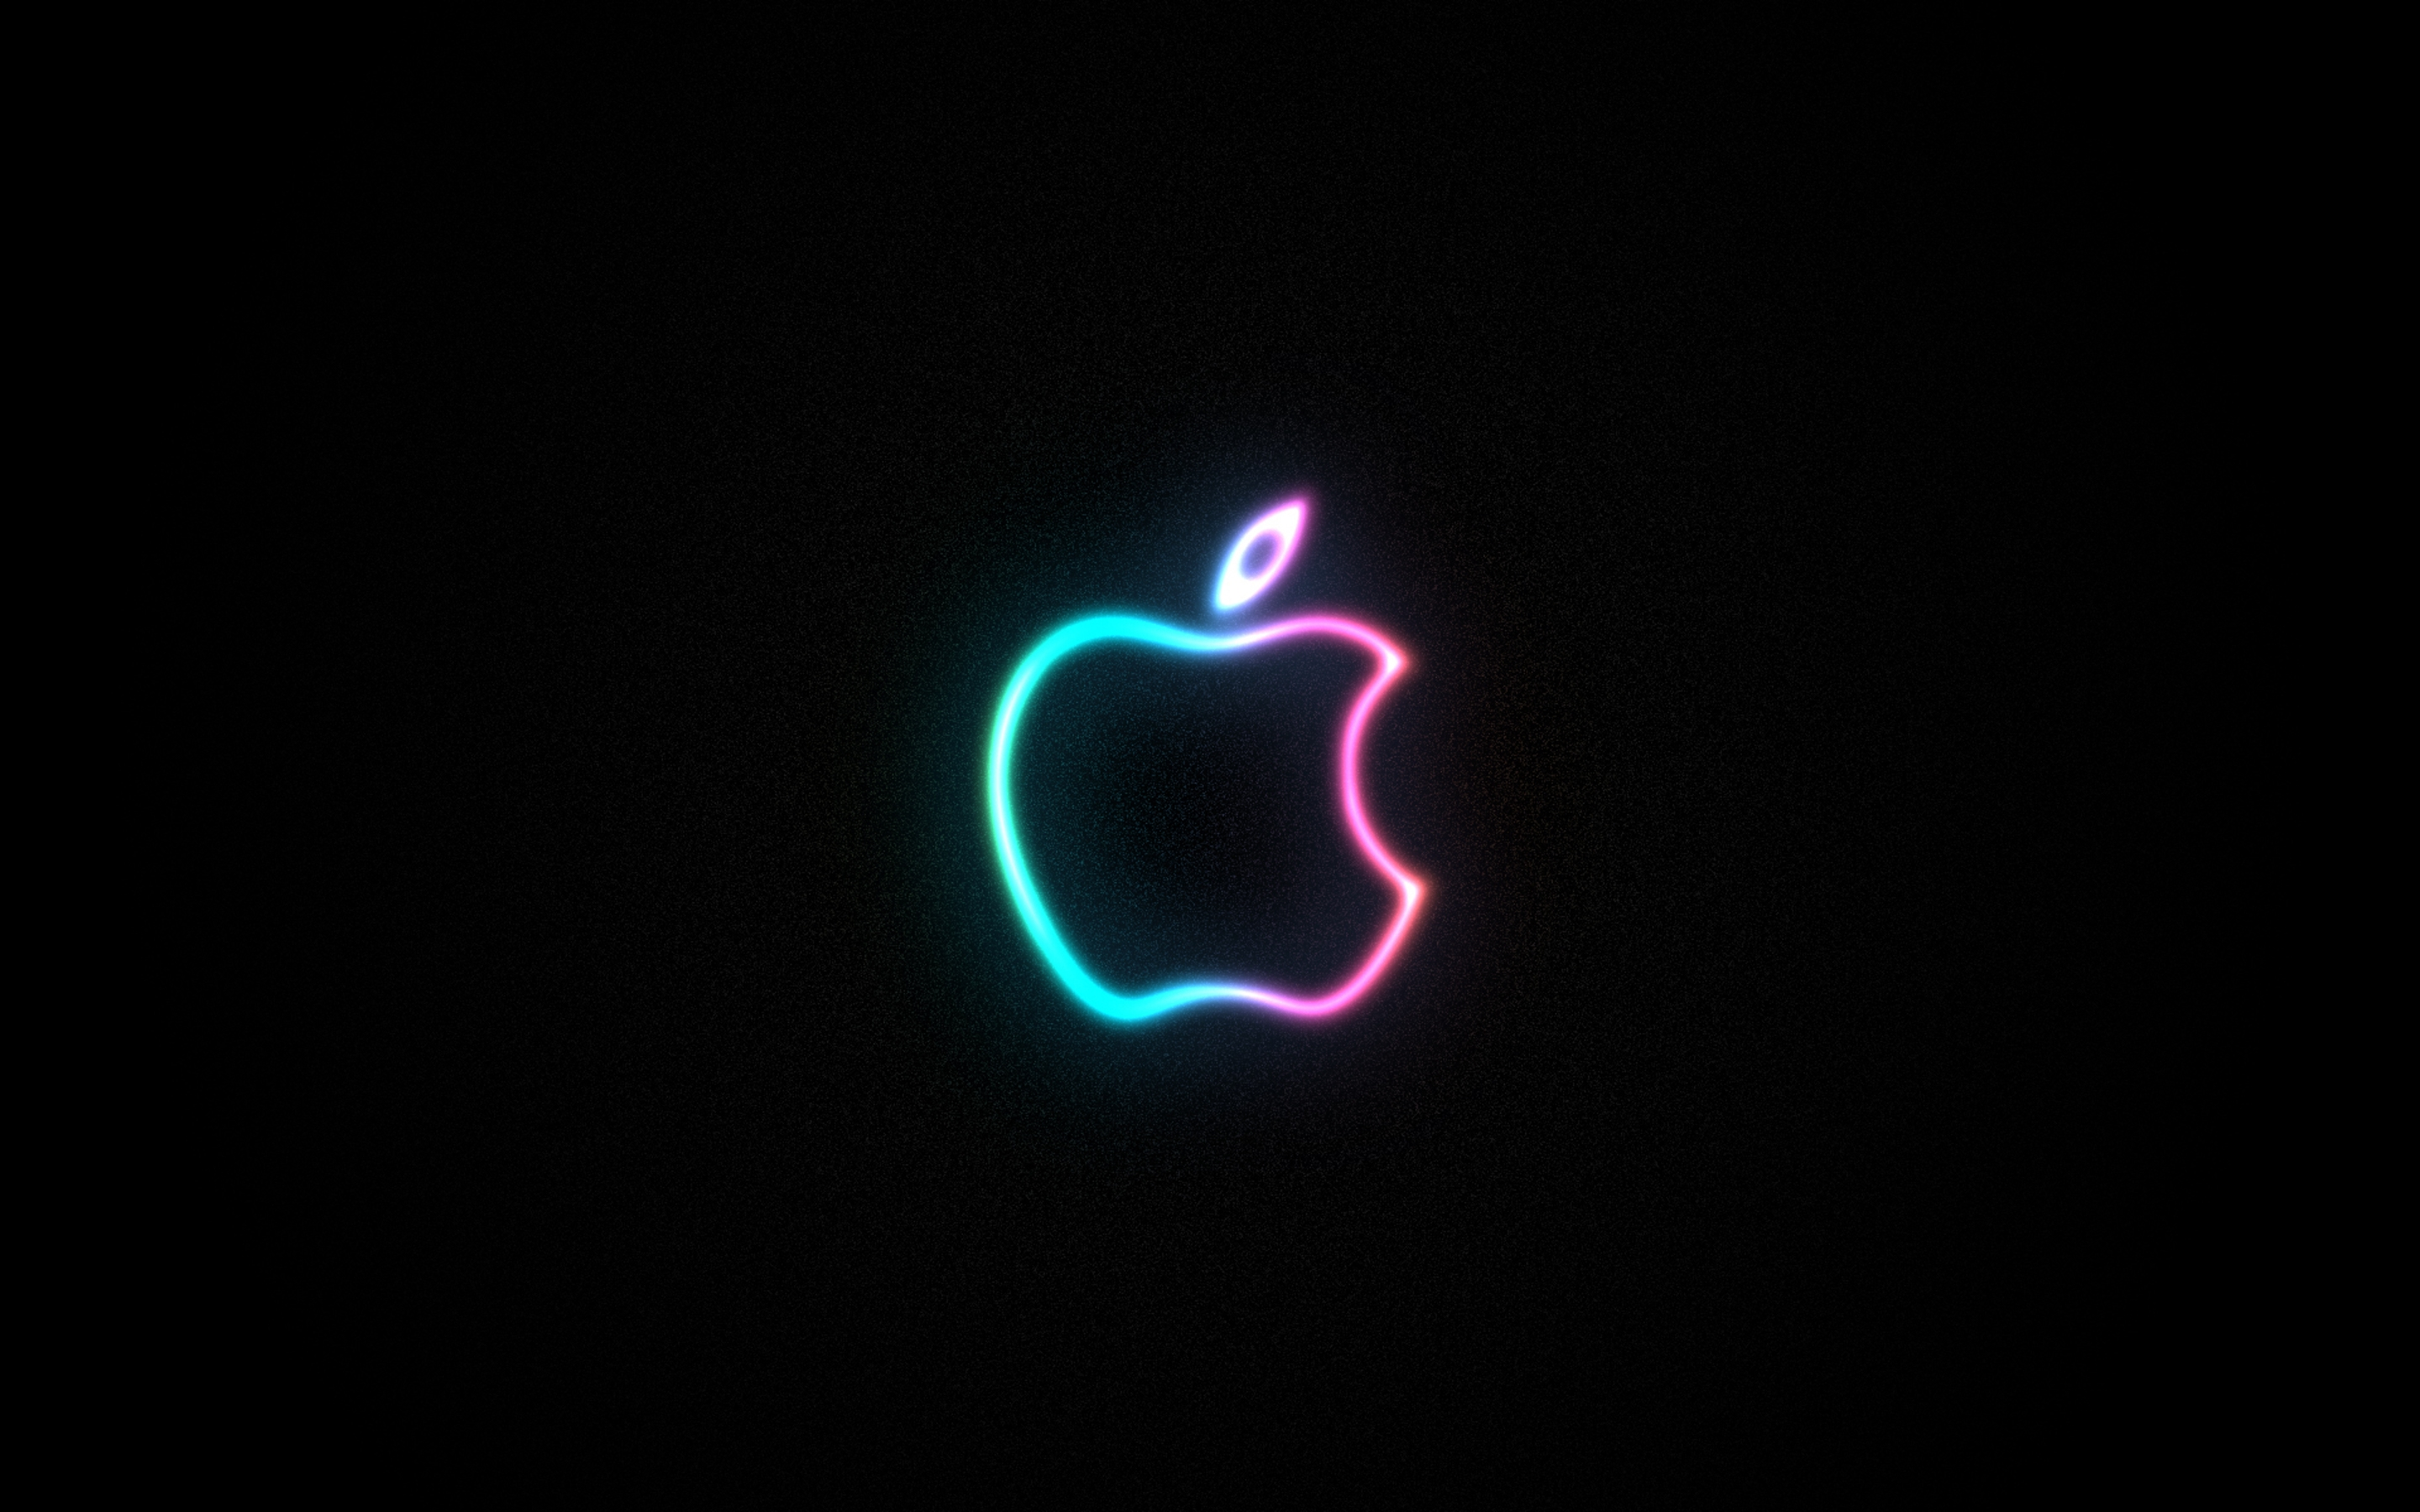 Apple Mac Wallpaper Download | Free Mac Wallpapers Download